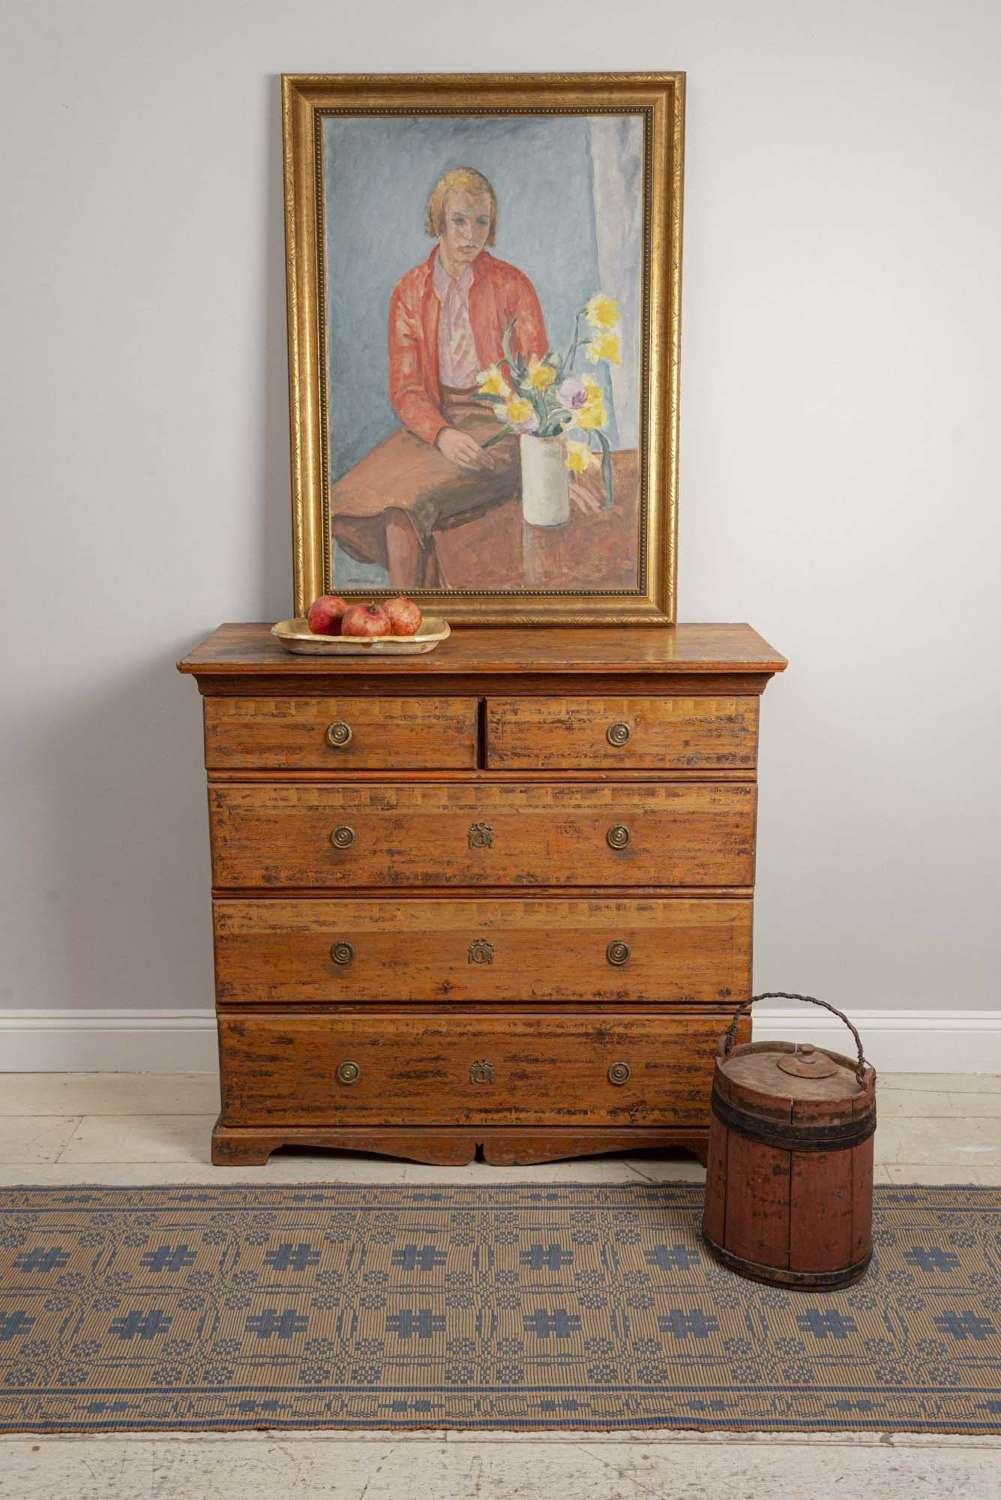 C18th Swedish country commode with original paint